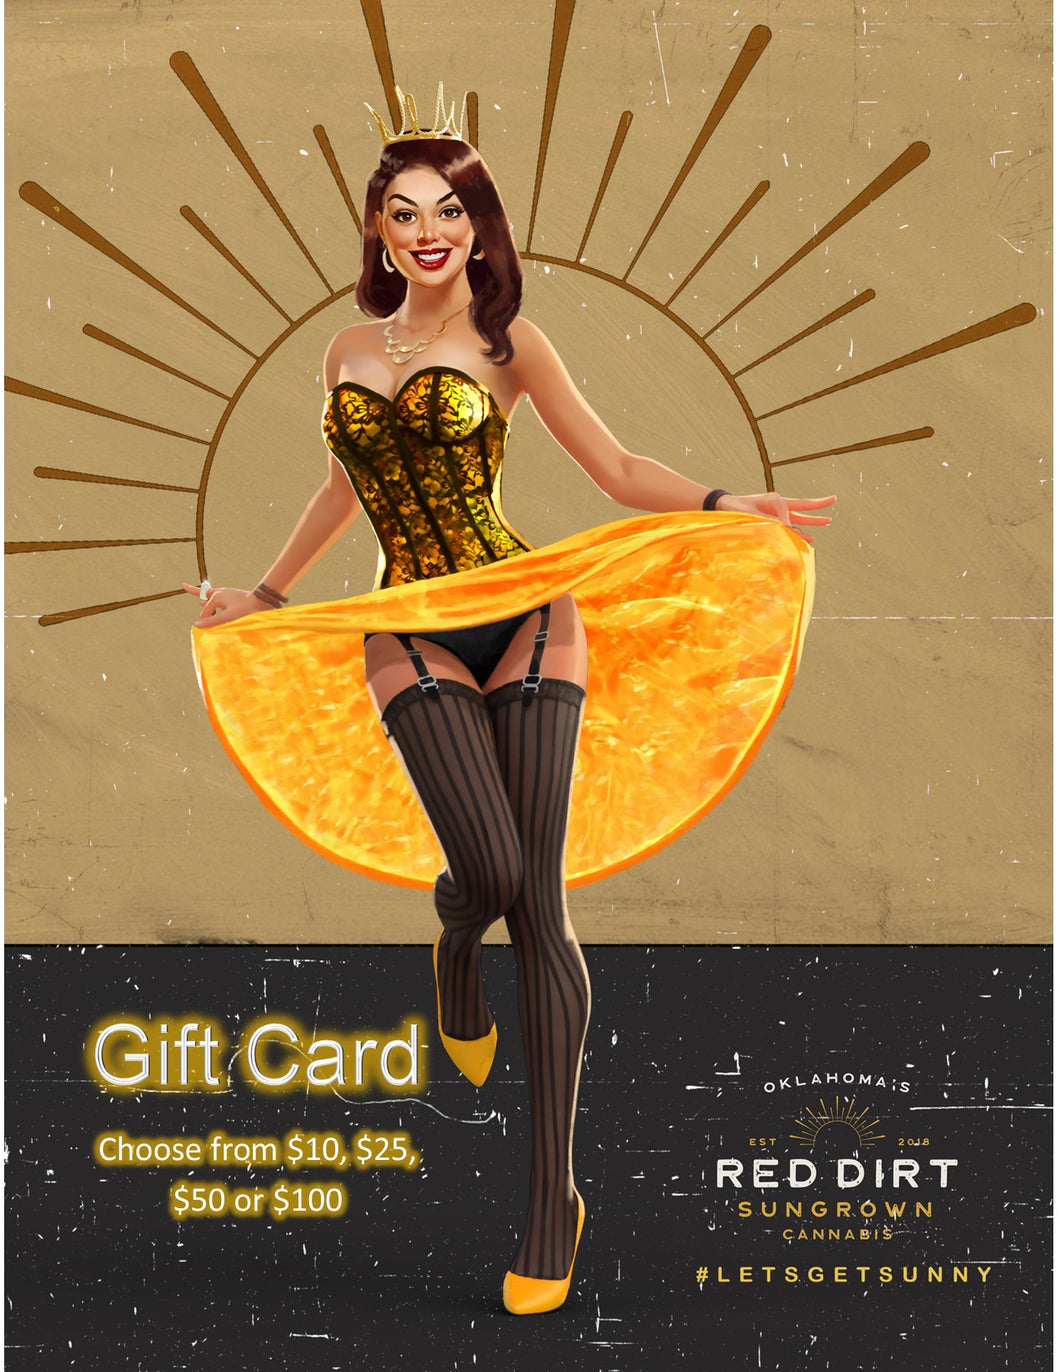 Red Dirt Sungrown Gift Card